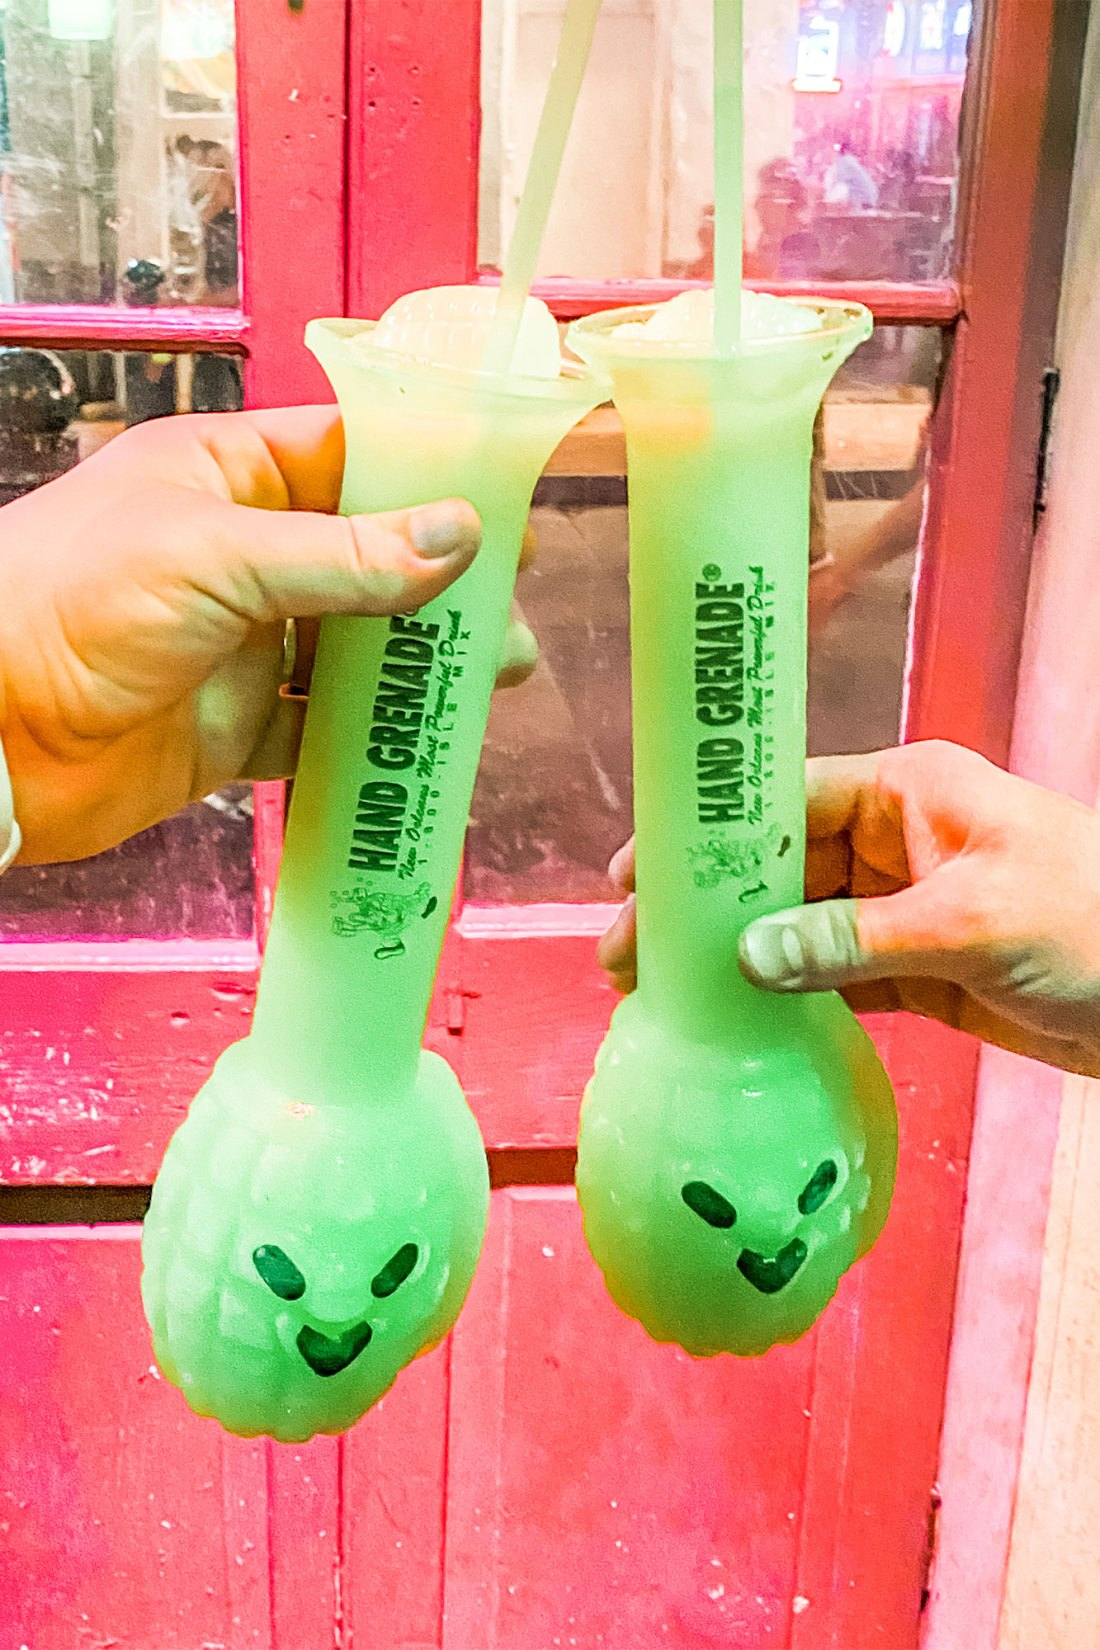 Bright green drinks in front of a pink door in New Orleans